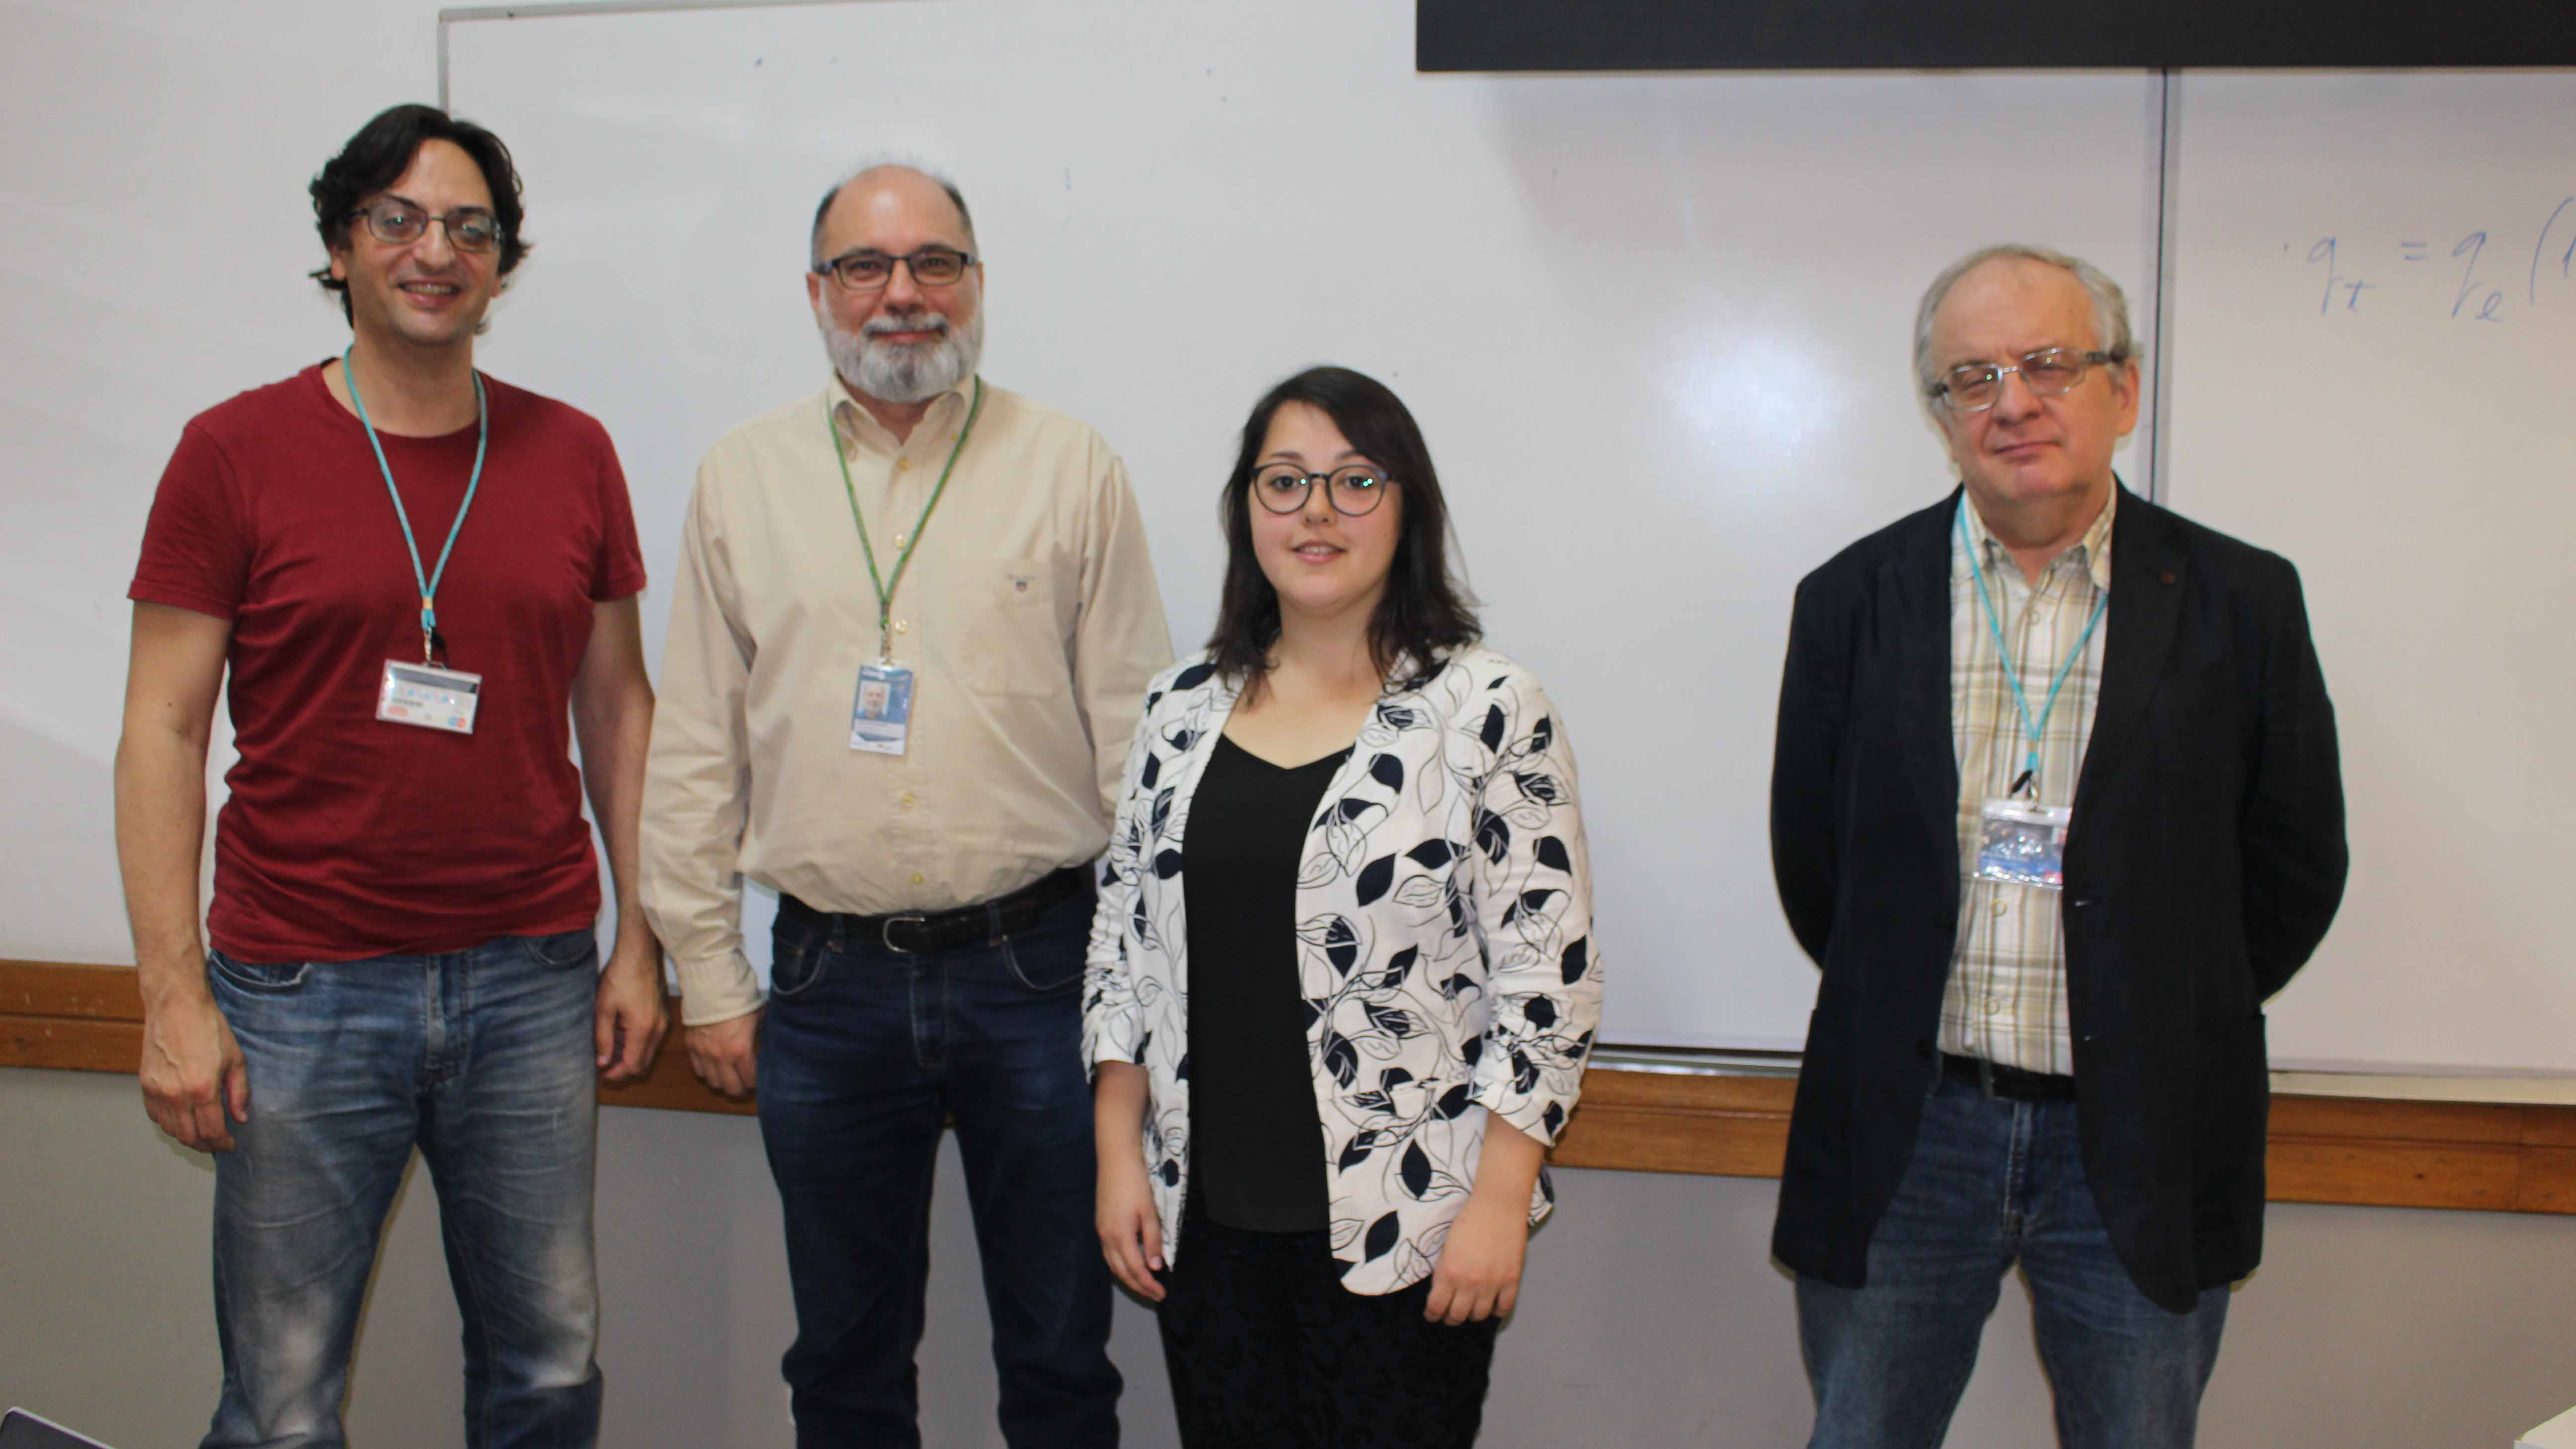 Master Sabriie Vatansever and the evaluation panel for her dissertation. From left to right: Professor Pedro Pires, Professor João Rodrigues, Master Sabriie Vatansever and Professor José Mesquita.